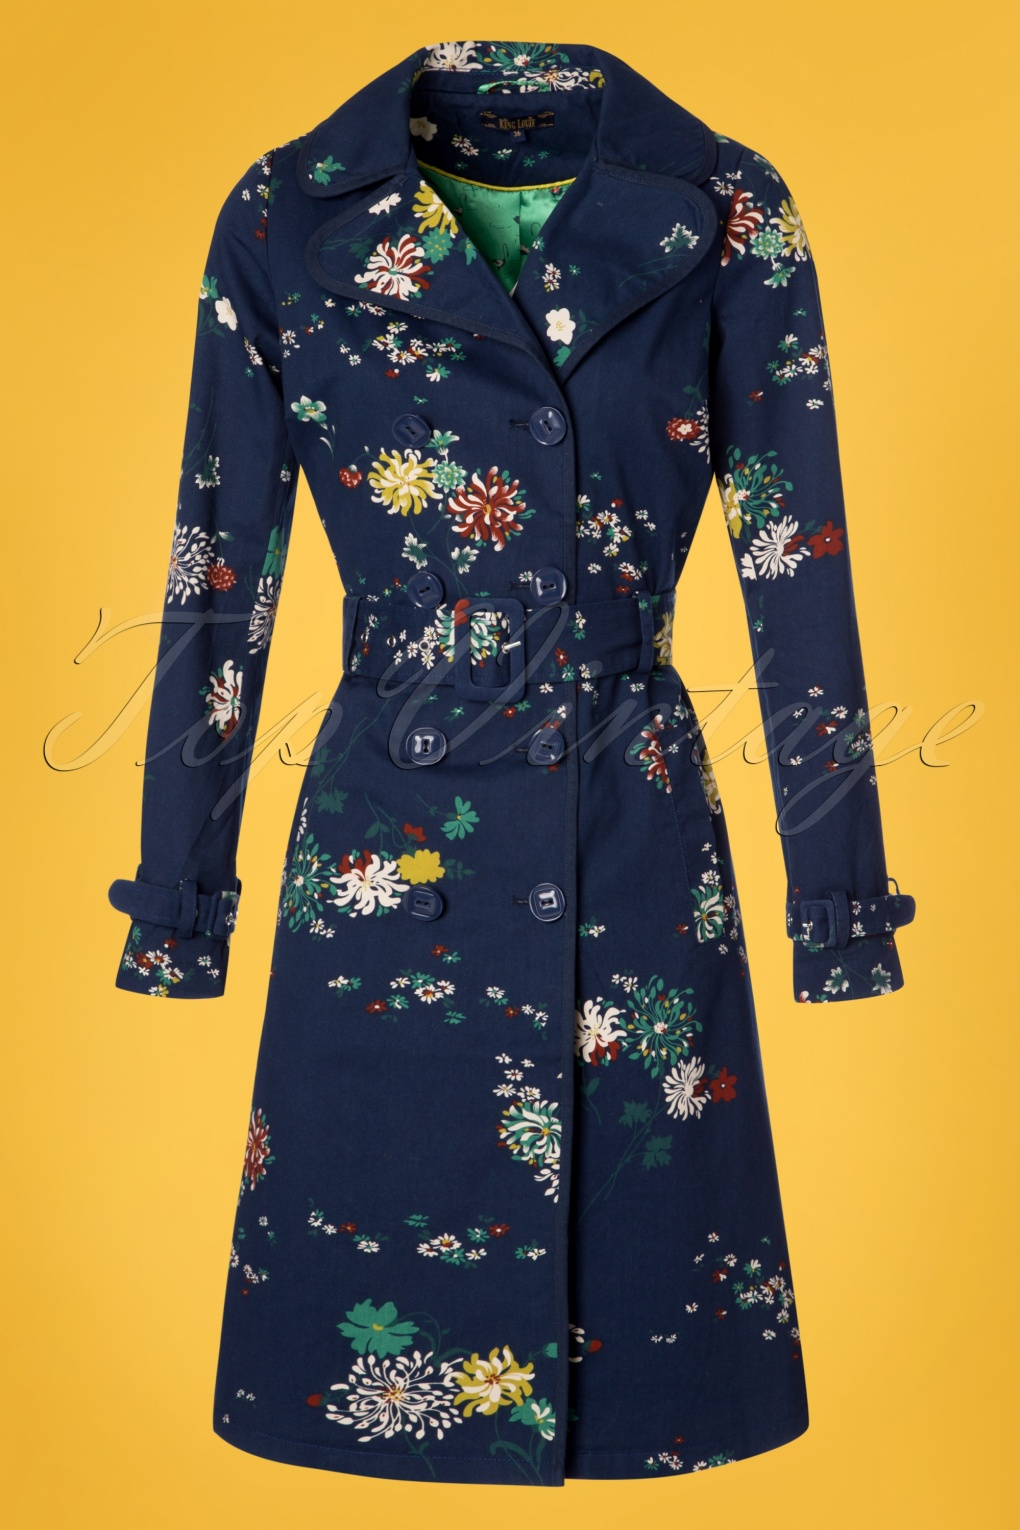 Vintage Coats & Jackets | Retro Coats and Jackets 60s Goldflower Trenchcoat in Dark Navy £120.92 AT vintagedancer.com